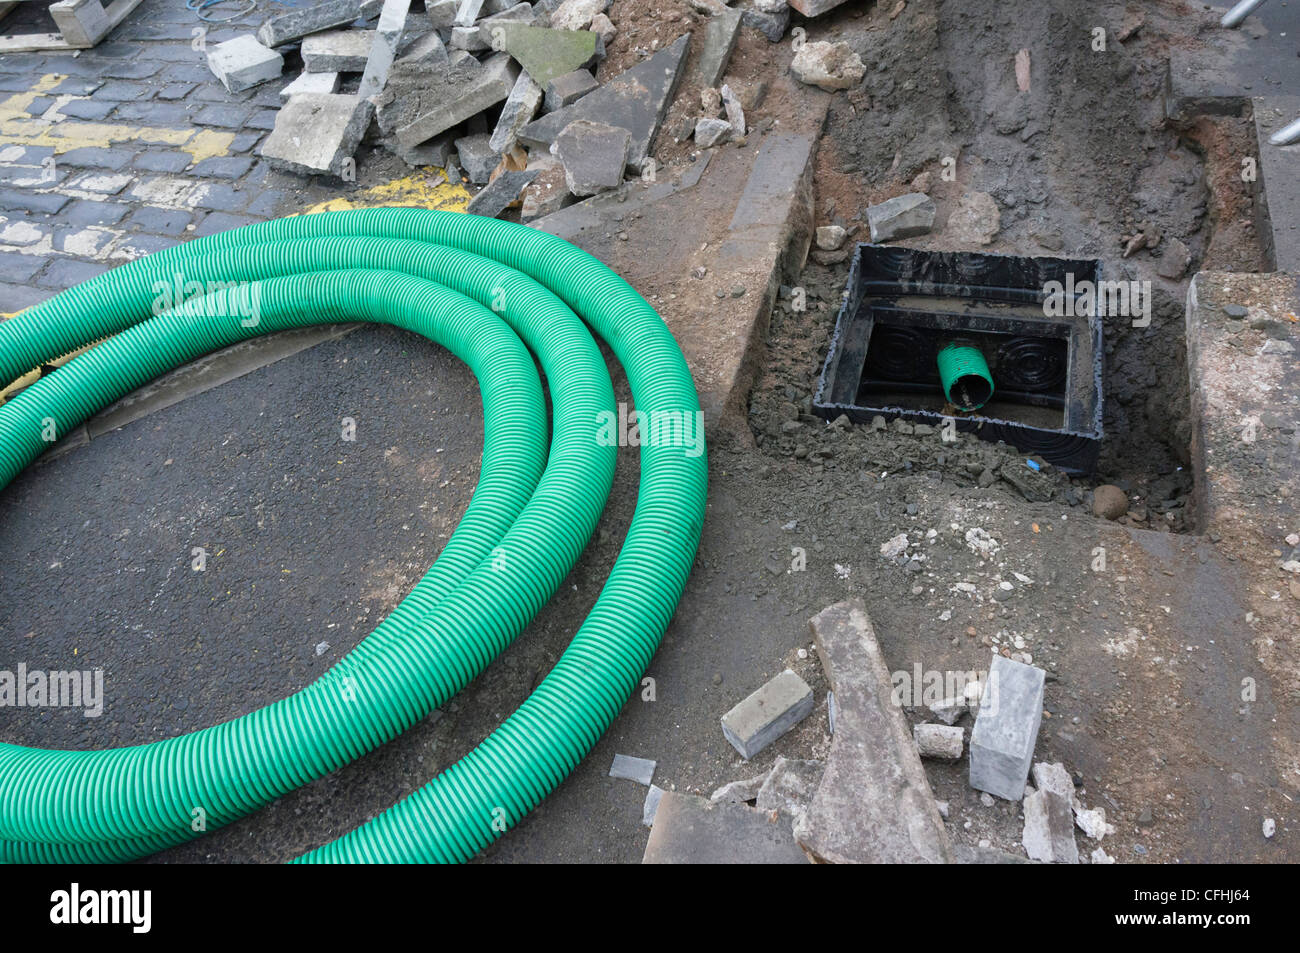 Plastic Underground Pipe Stock Photos Electrical Wire Flexible Water Services Excavation To Install New Sewerage Pipes In A Scottish Town